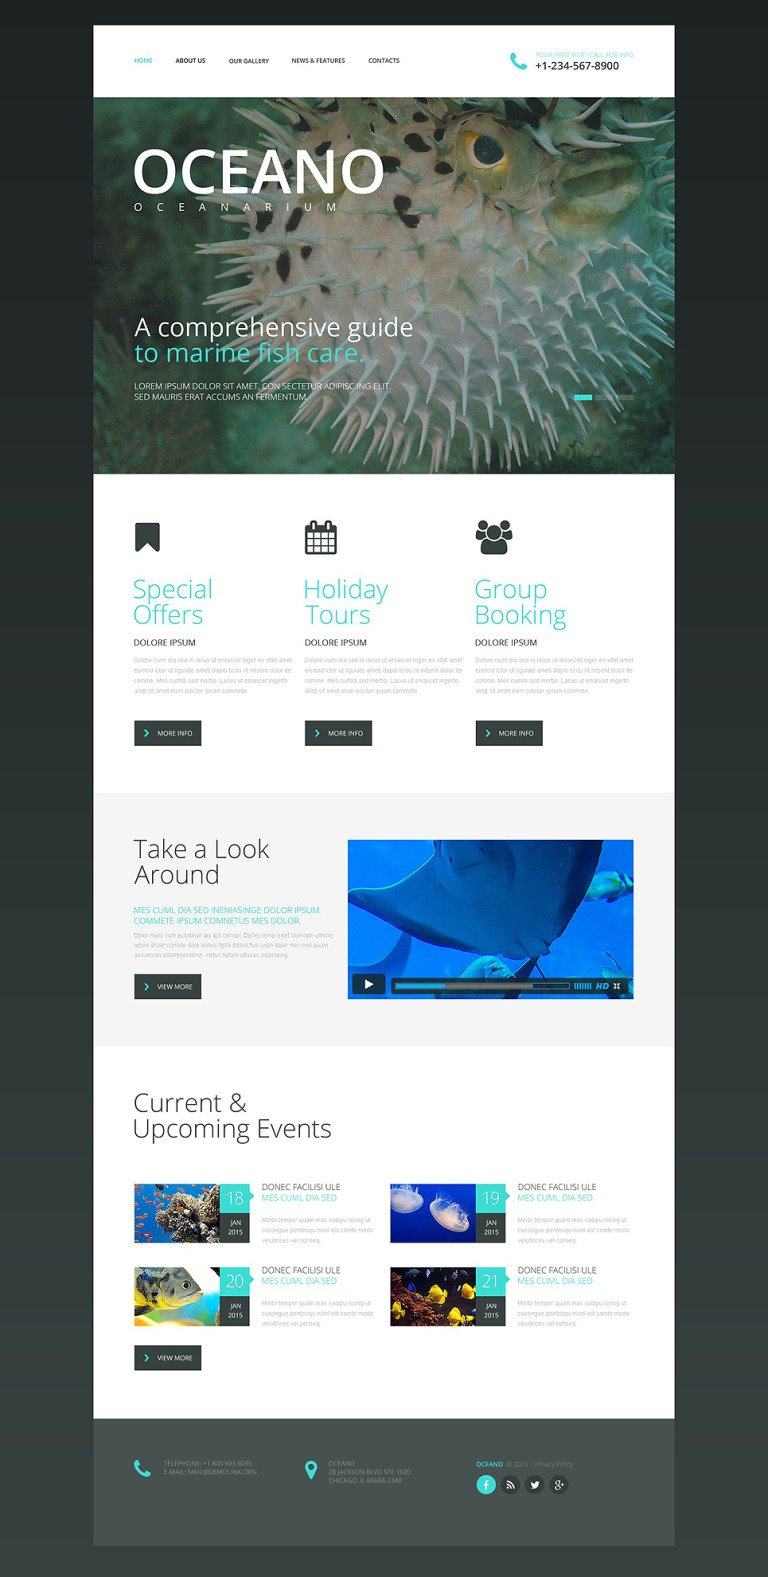 Oceanarium Website Template New Screenshots BIG